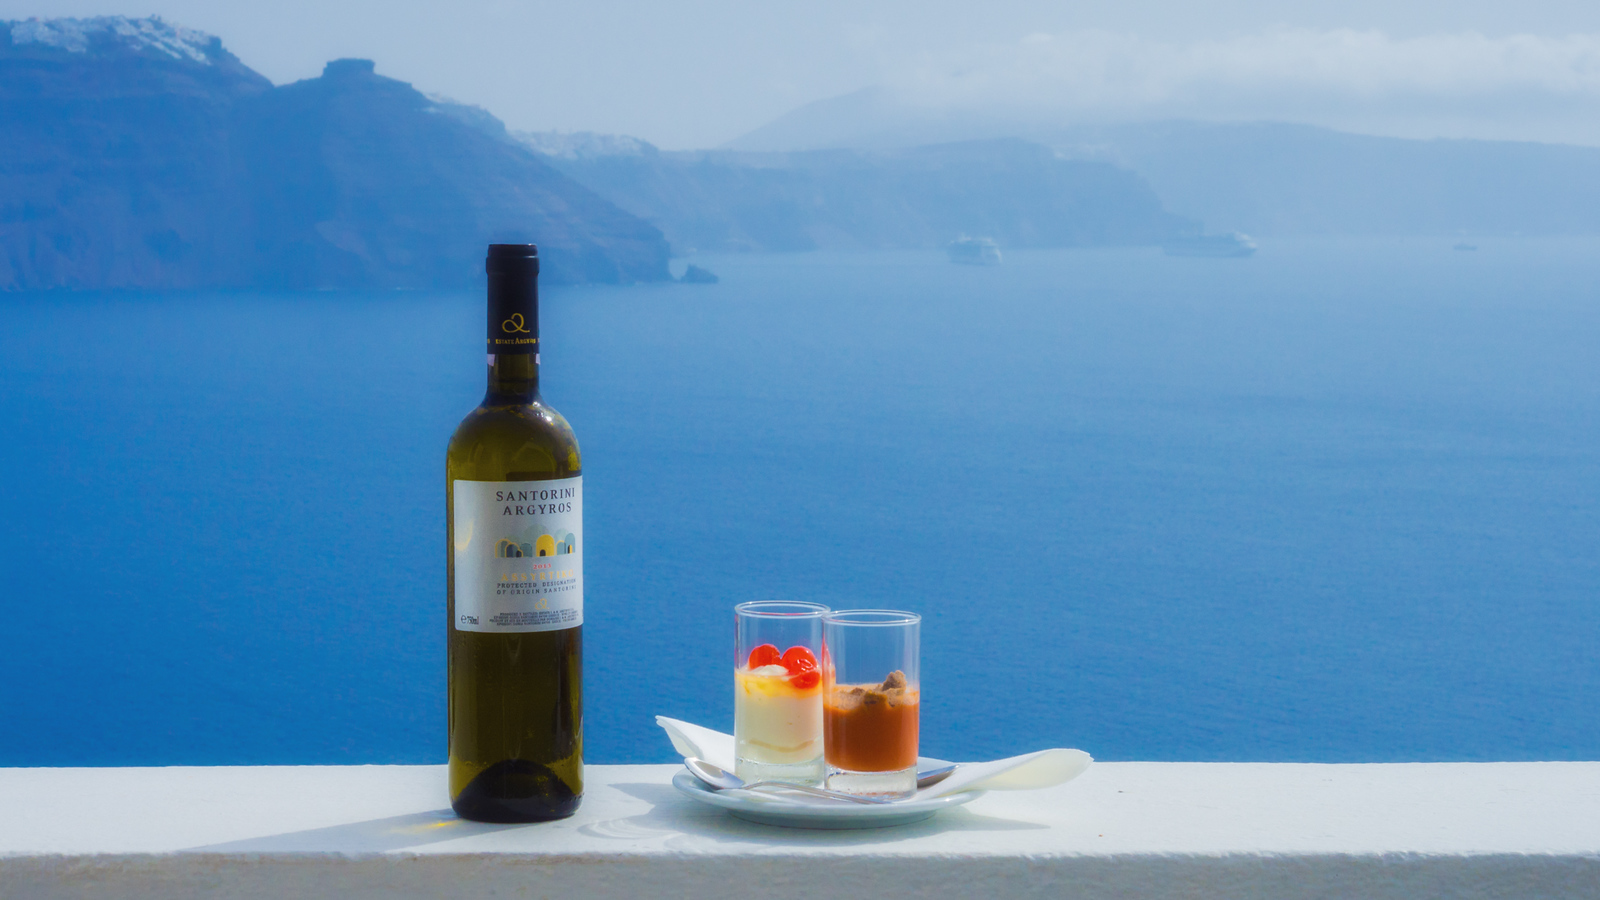 Even the food and wine come with a view in Santorini